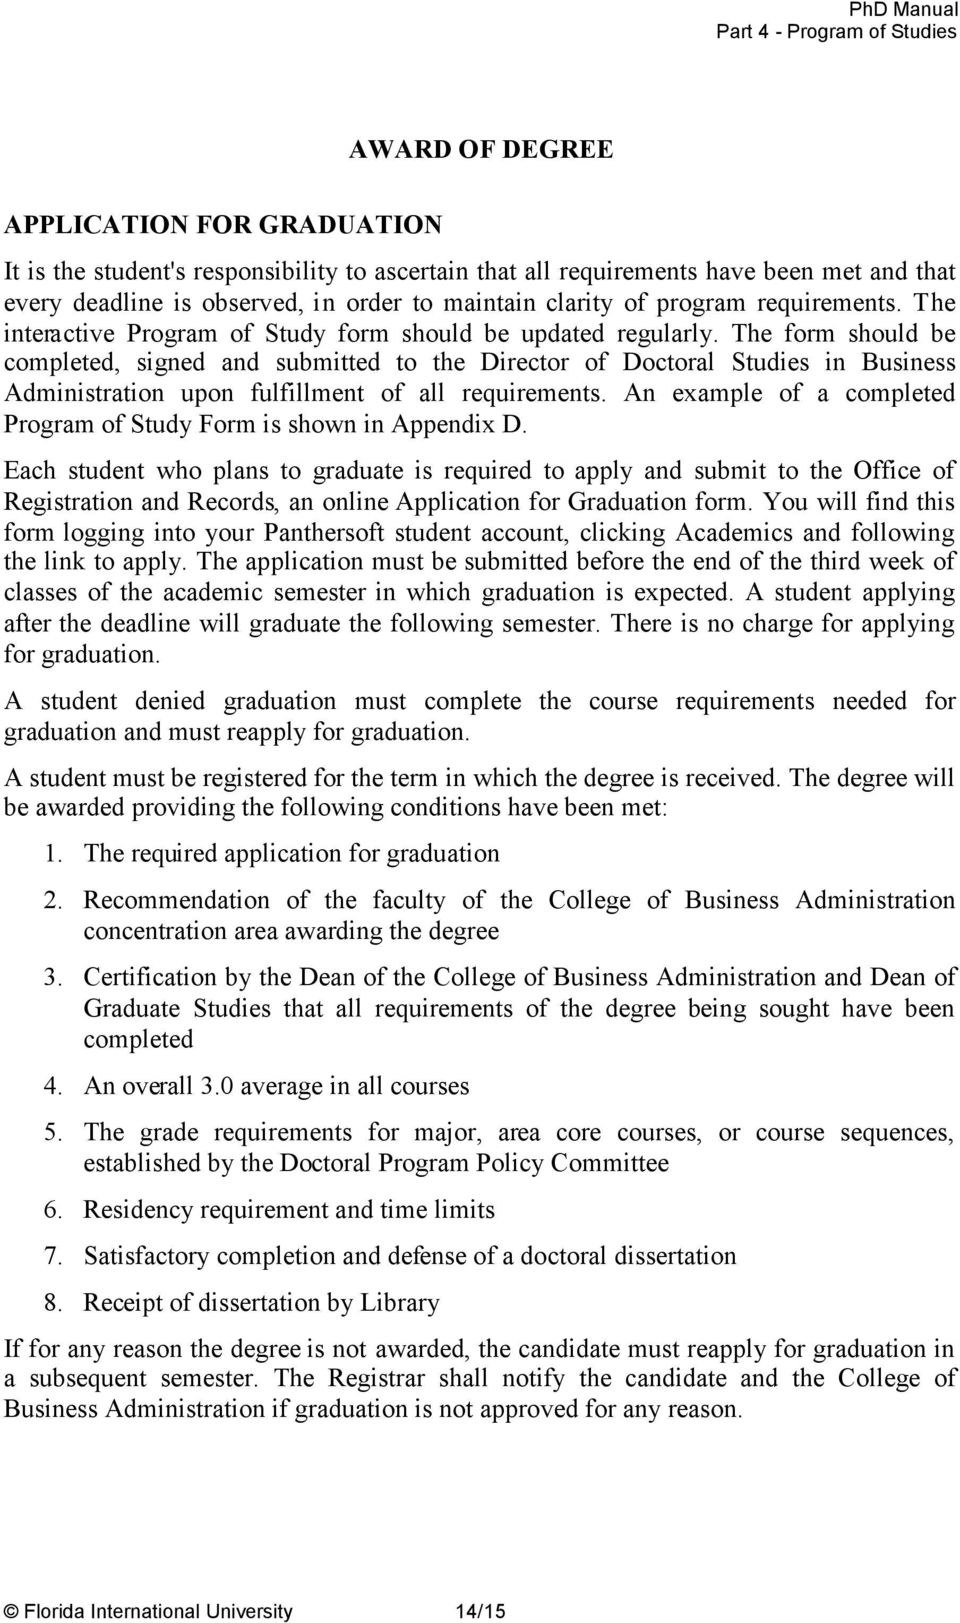 The form should be completed, signed and submitted to the Director of Doctoral Studies in Business Administration upon fulfillment of all requirements.